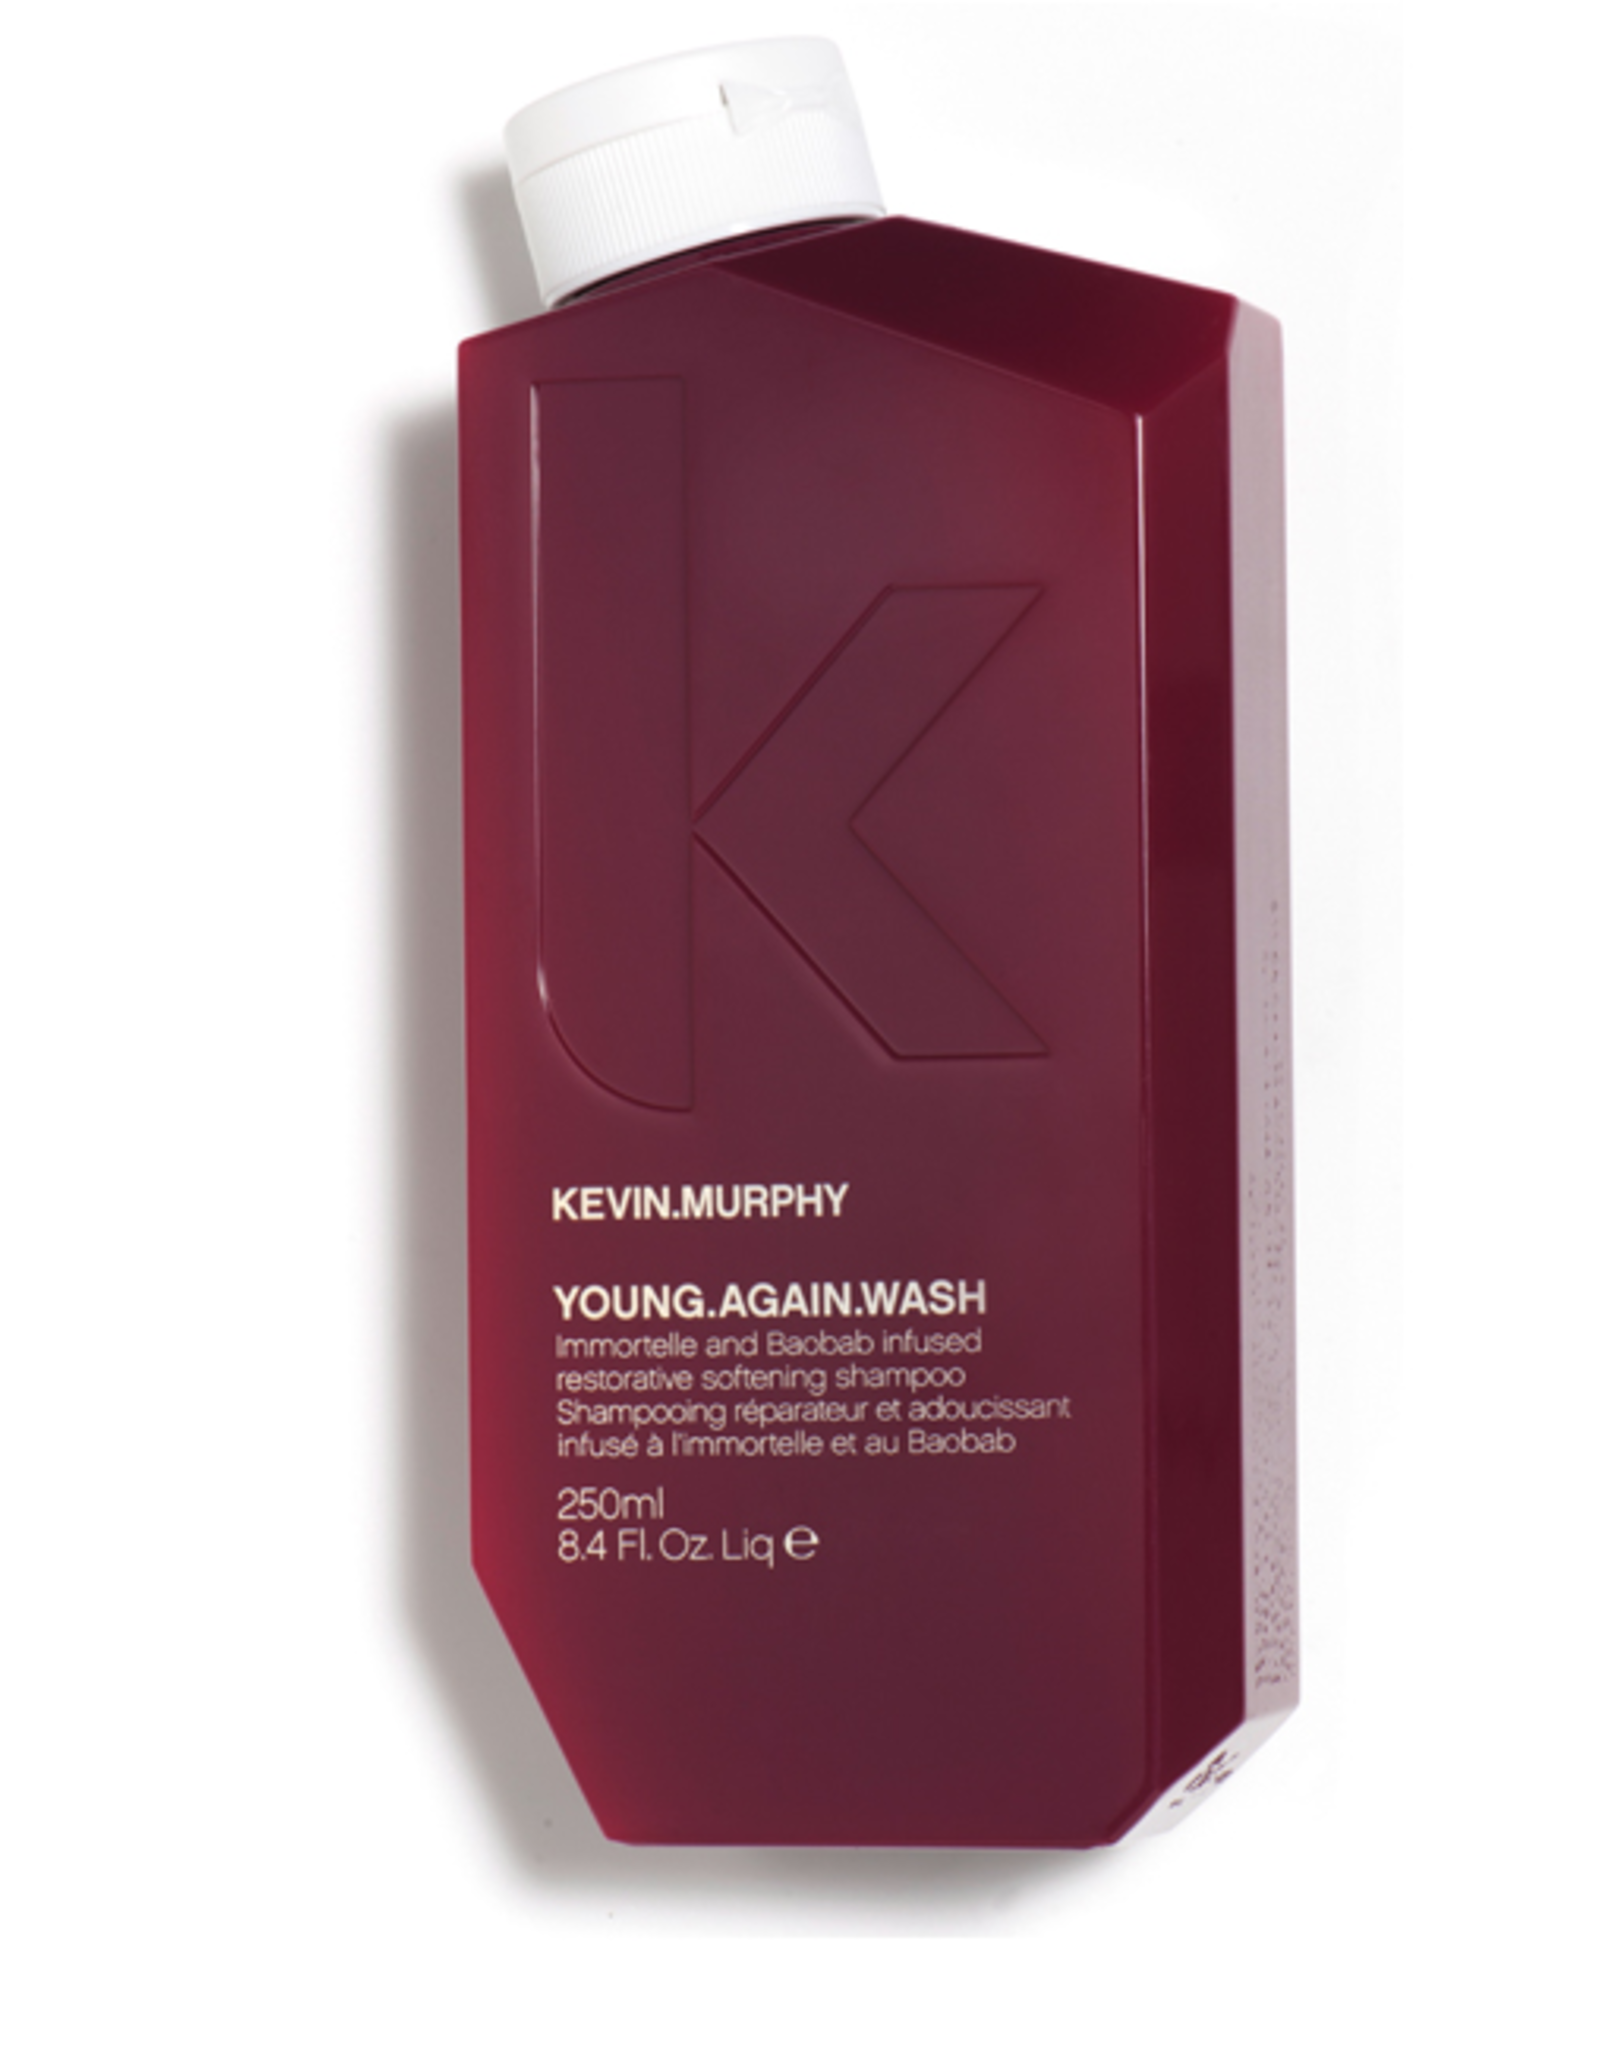 KEVIN.MURPHY Young.Again.Wash (250 ml)